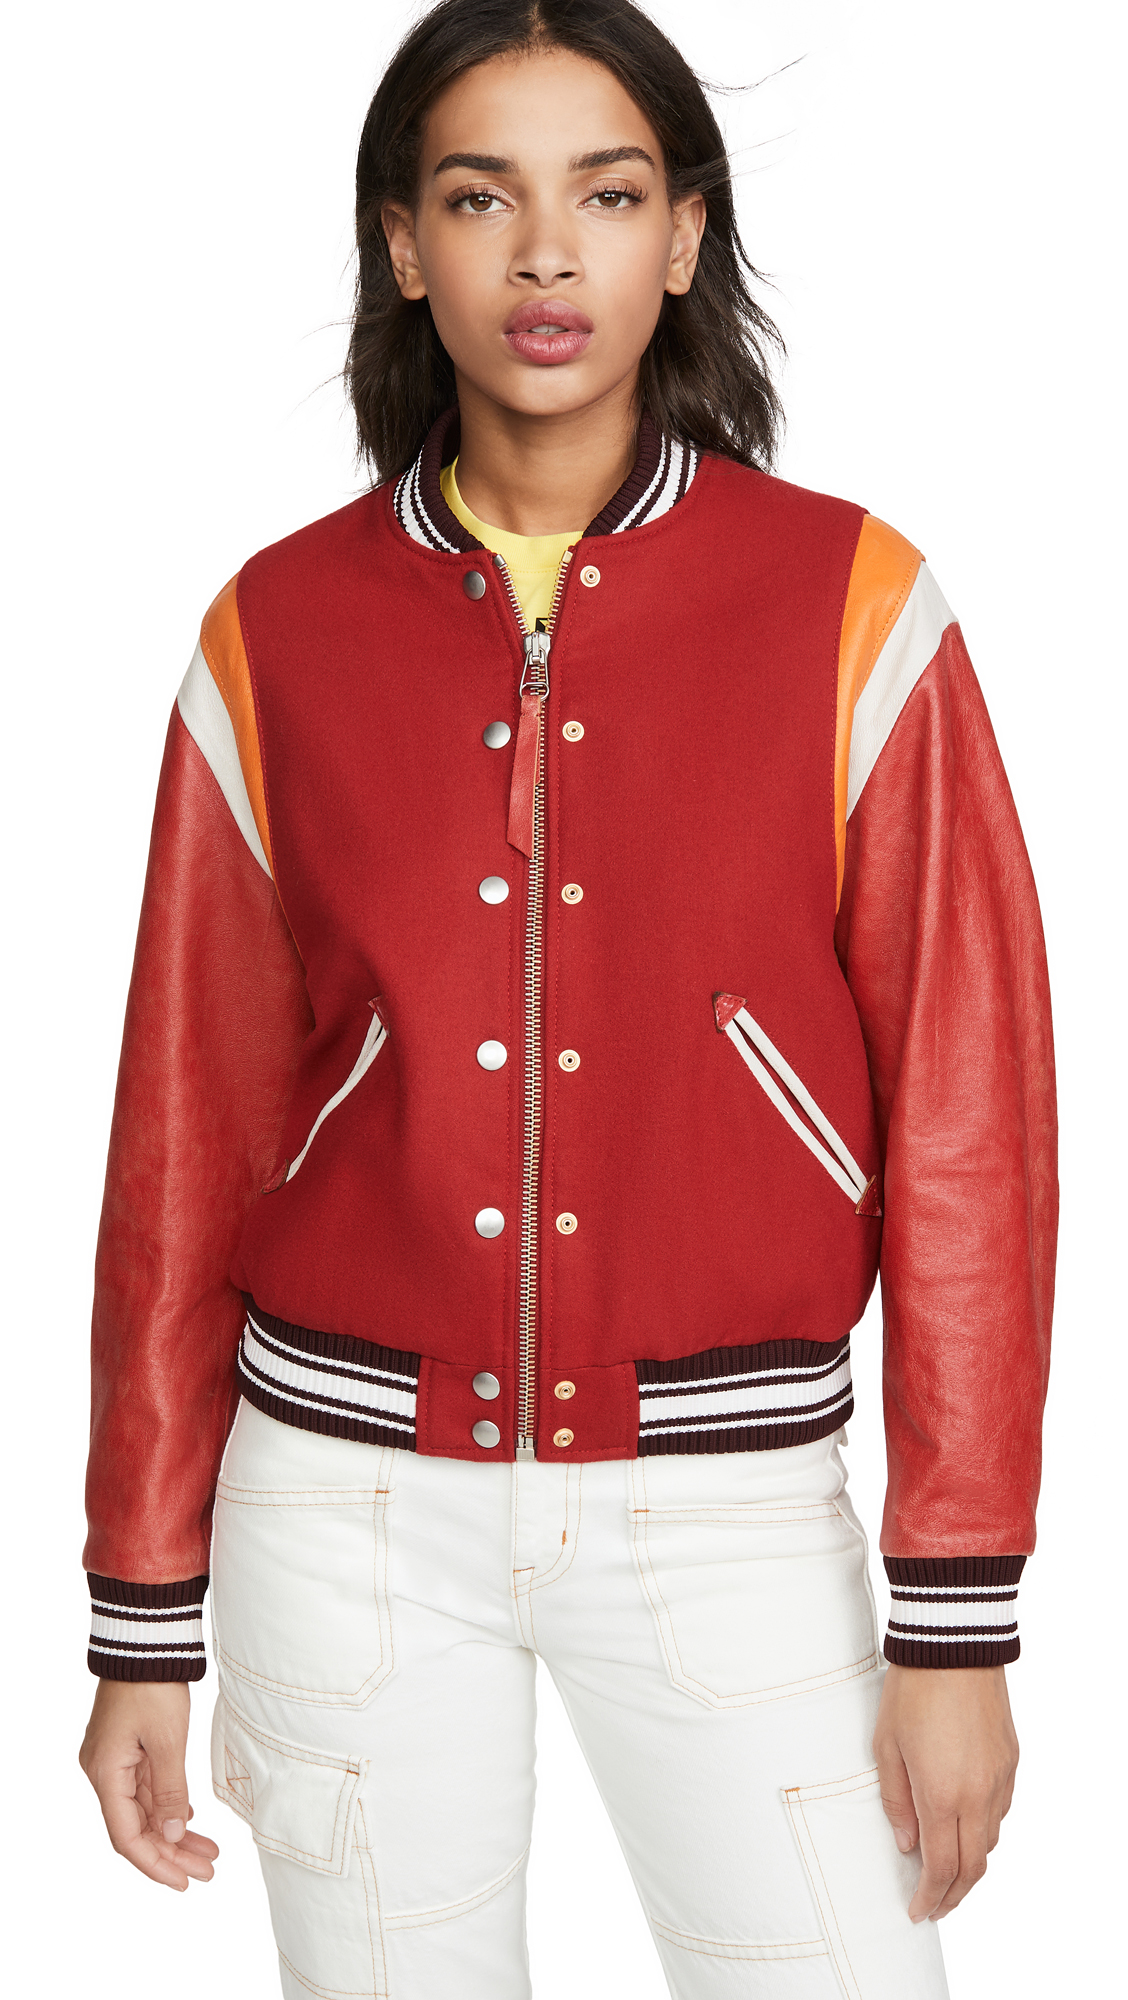 Buy Golden Goose Scarlett Bomber Jacket online beautiful Golden Goose Clothing, Jackets